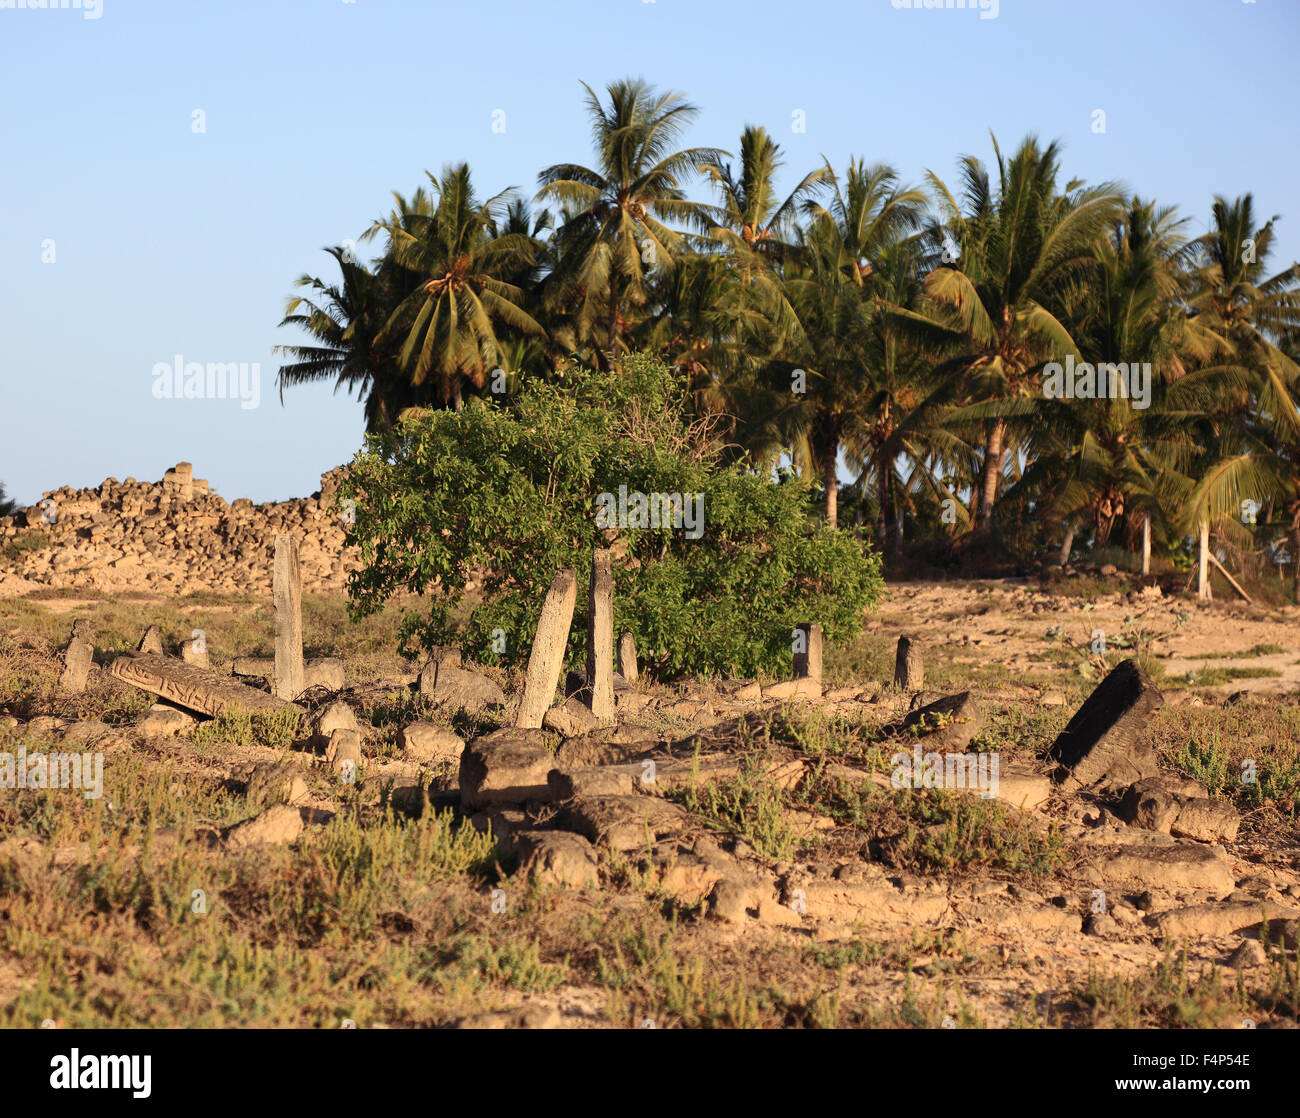 More historically Arabian cemetery in the Al-Baleed excavation field, Unesco world cultural heritage - Stock Image